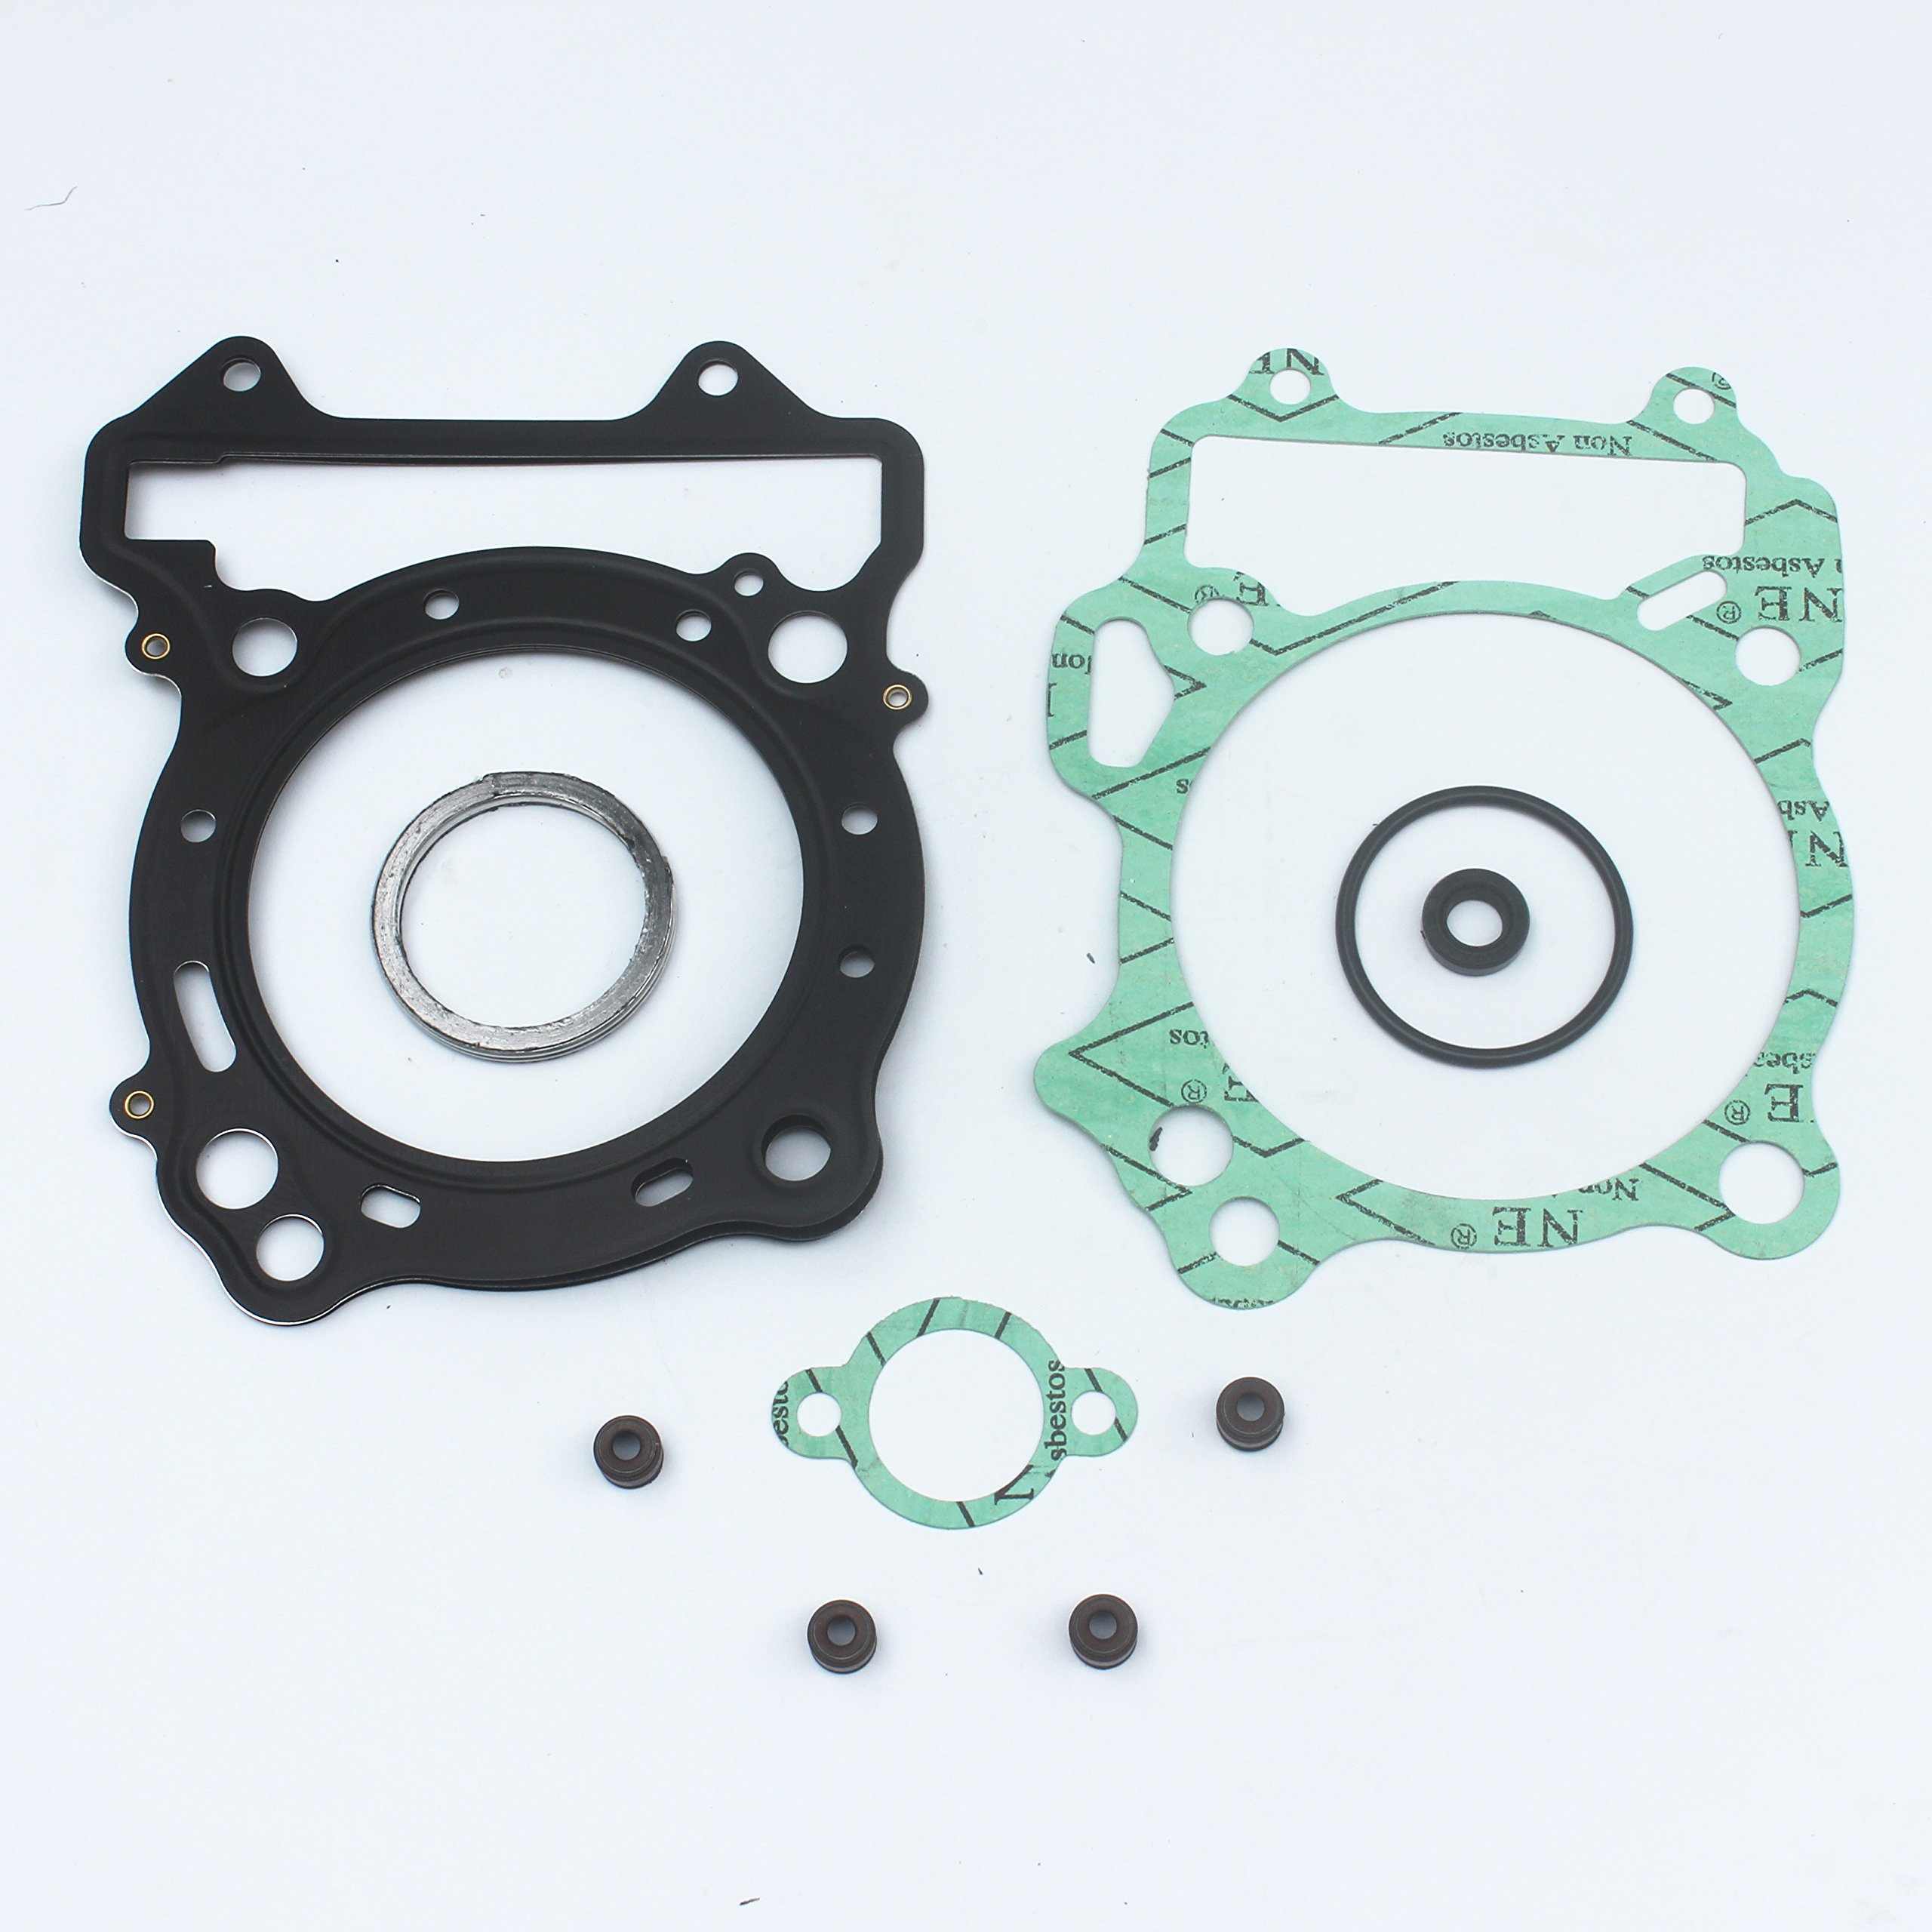 KIPA Top End Head Gasket Kit For Kawasaki KFX400 Suzuki Z400 Quadsport ARCTIC CAT DVX 400 ATV Quad Asbestors-Free by KIPA